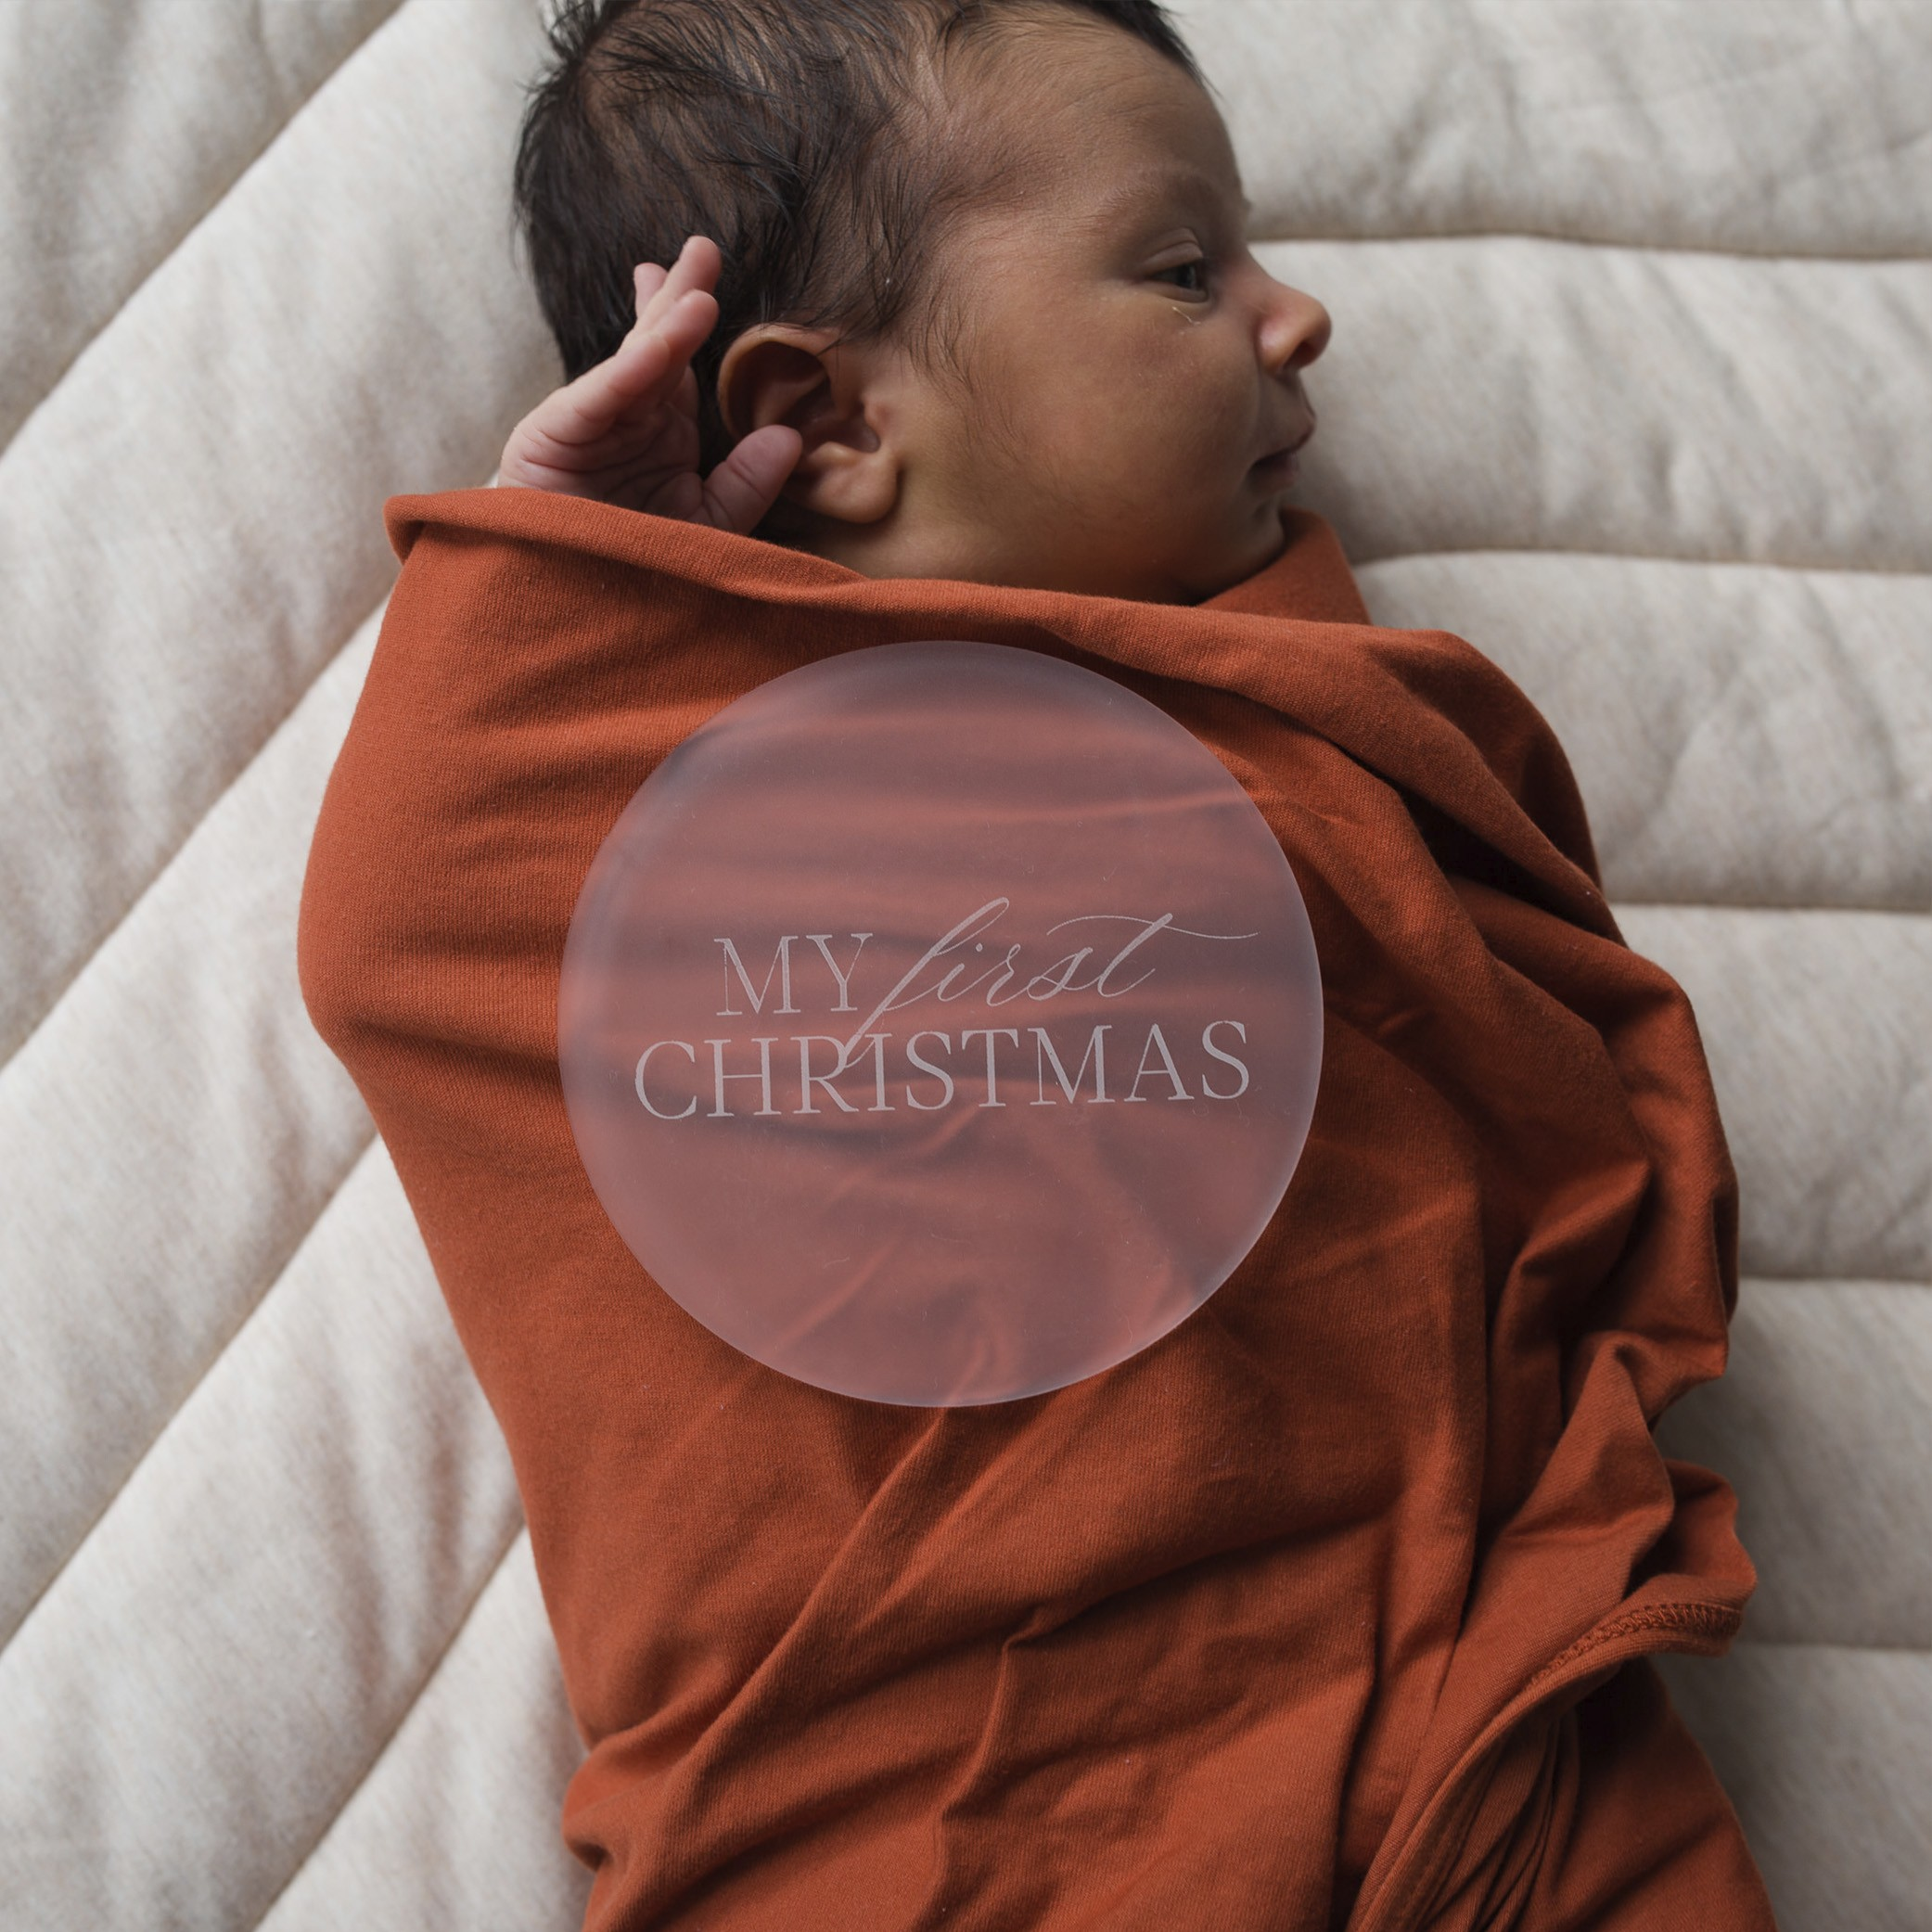 My First Christmas | Frosted acrylic Milestone Plates